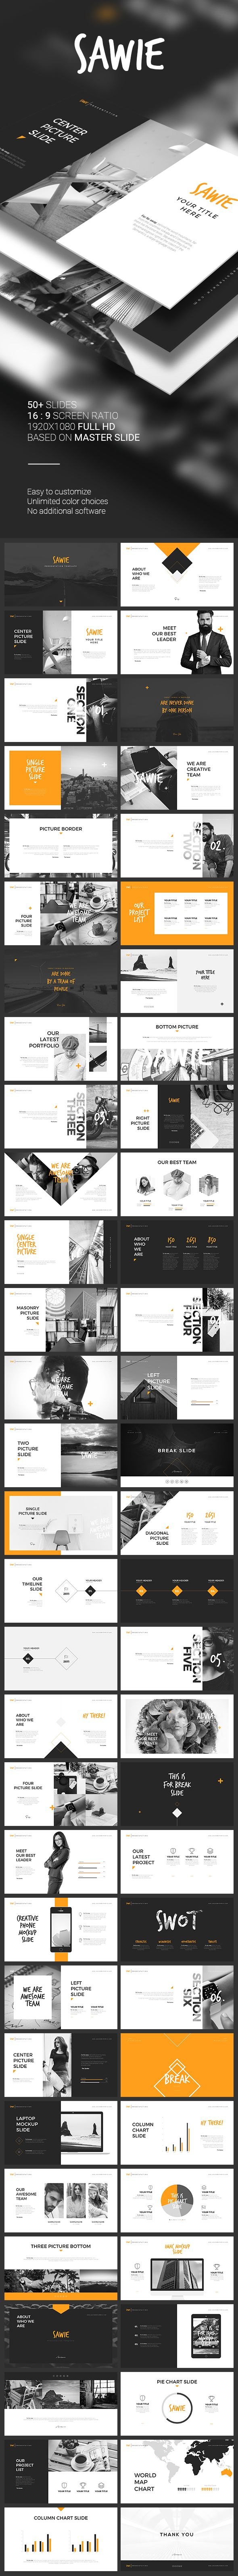 SAWIE PowerPoint Template. Download: https://graphicriver.net/item/sawie-powerpoint-template/18705123?ref=thanhdesign